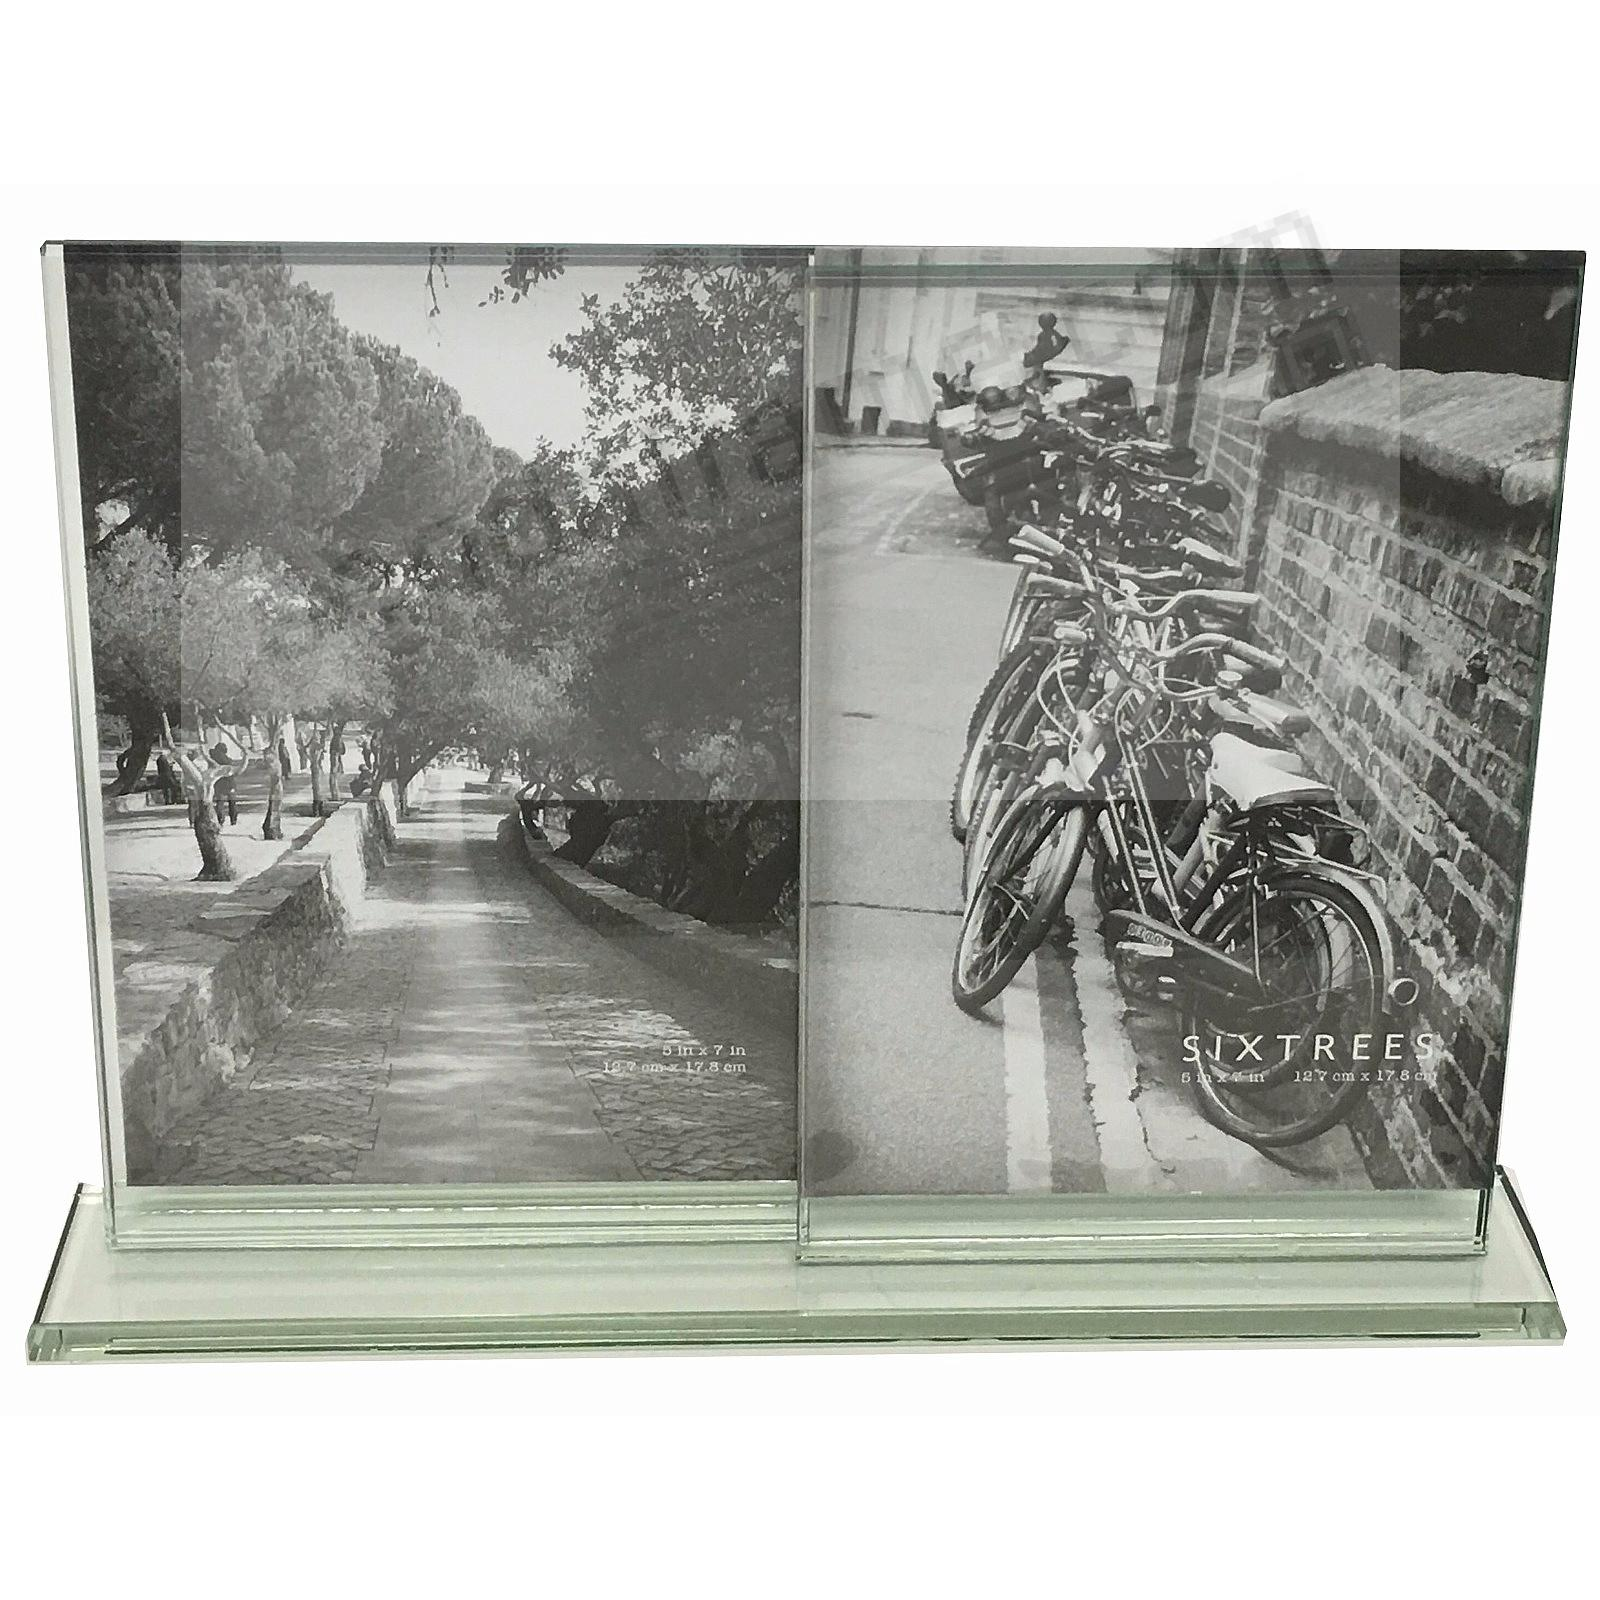 LELAND Double Photo 5x7 glass frame by Sixtrees®